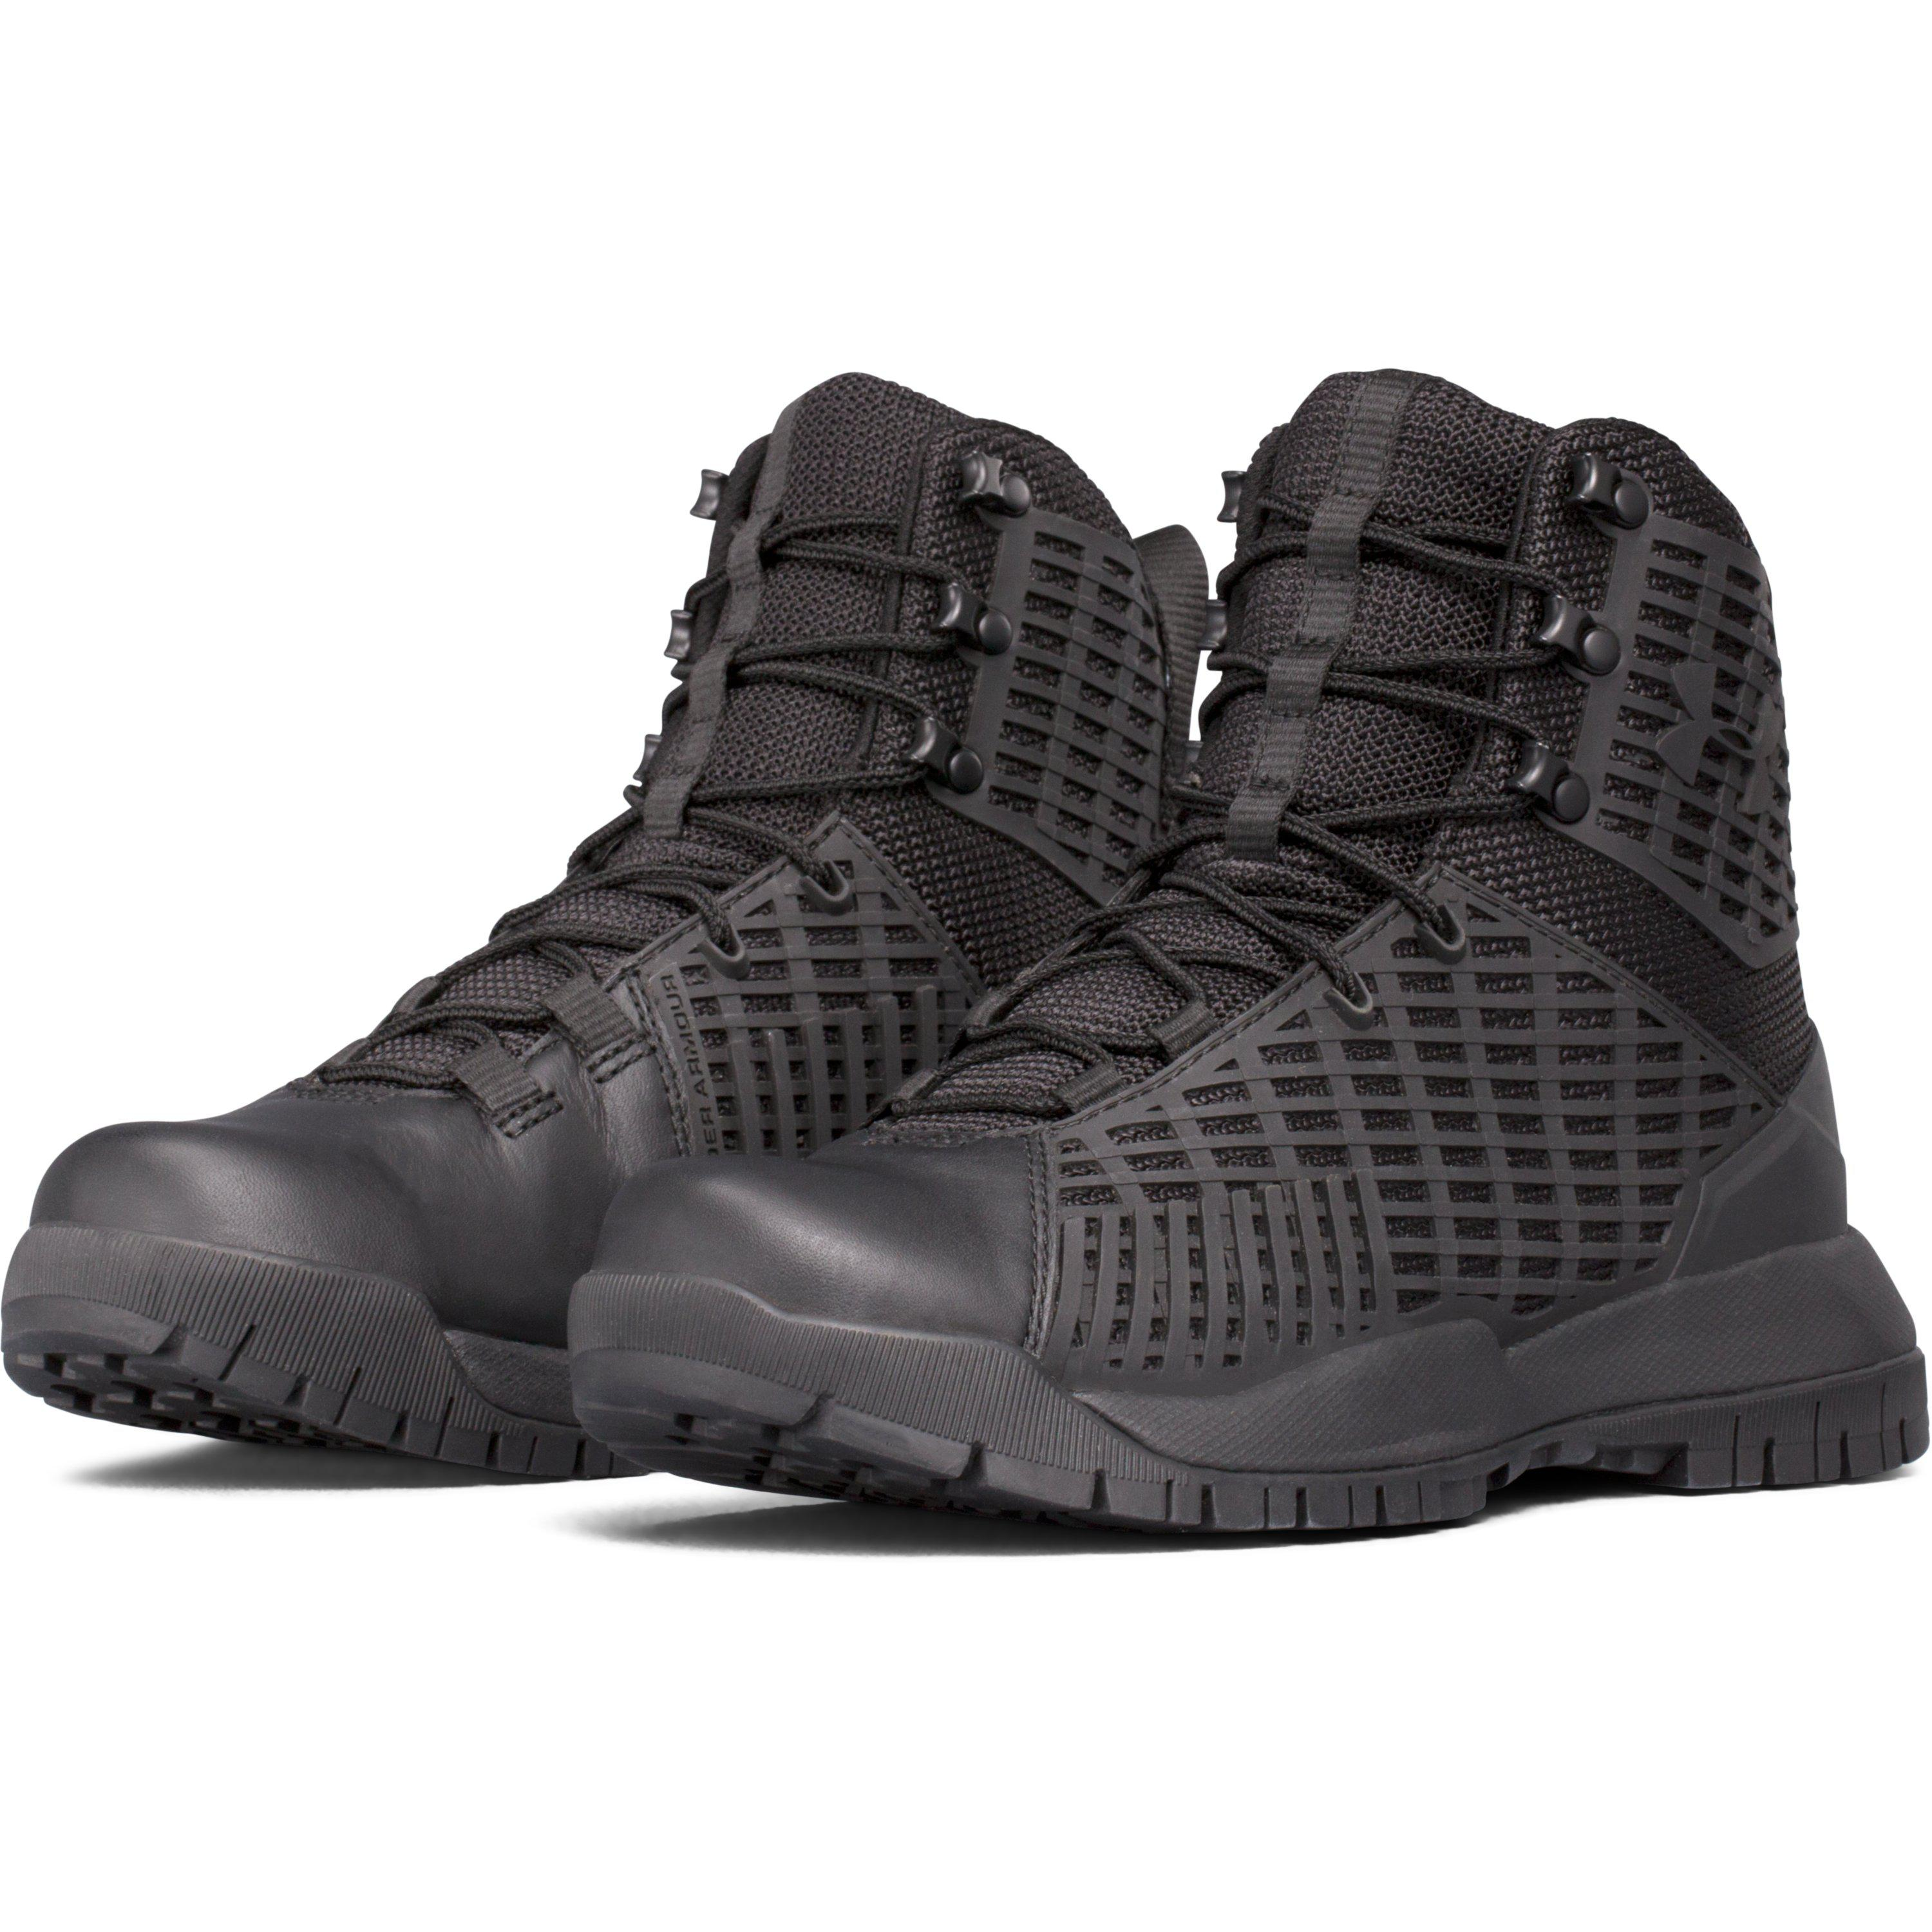 Lyst - Under Armour Women s Ua Stryker Tactical Boots in Black 81a3c5774a